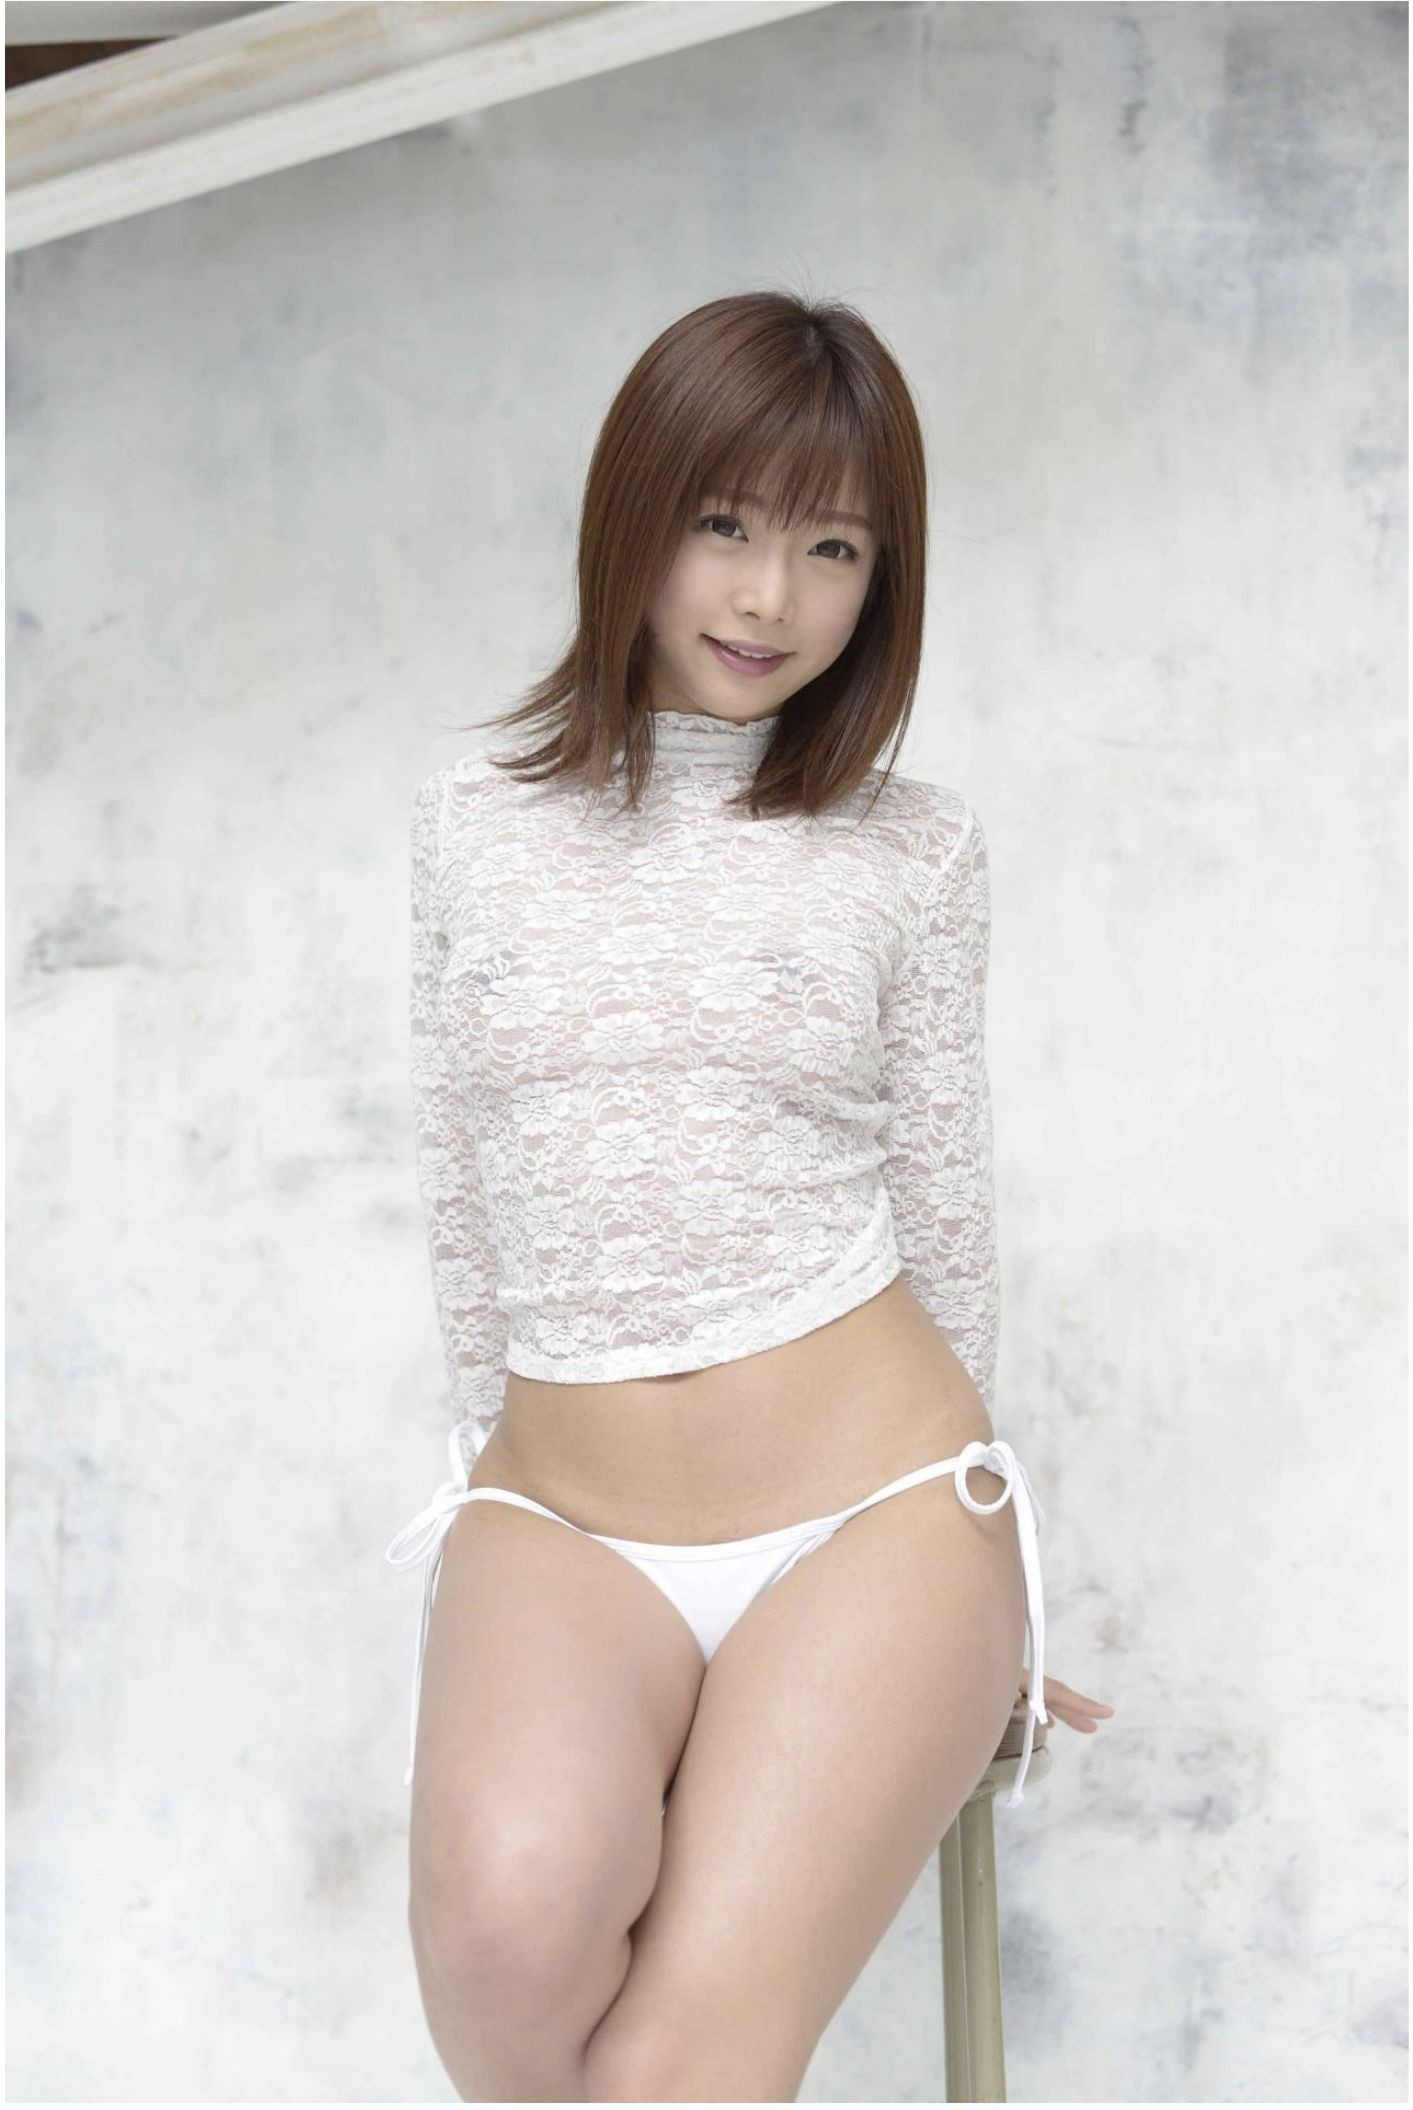 SOFT ON DEMAND GRAVURE COLLECTION 紗倉まな04 photo 044